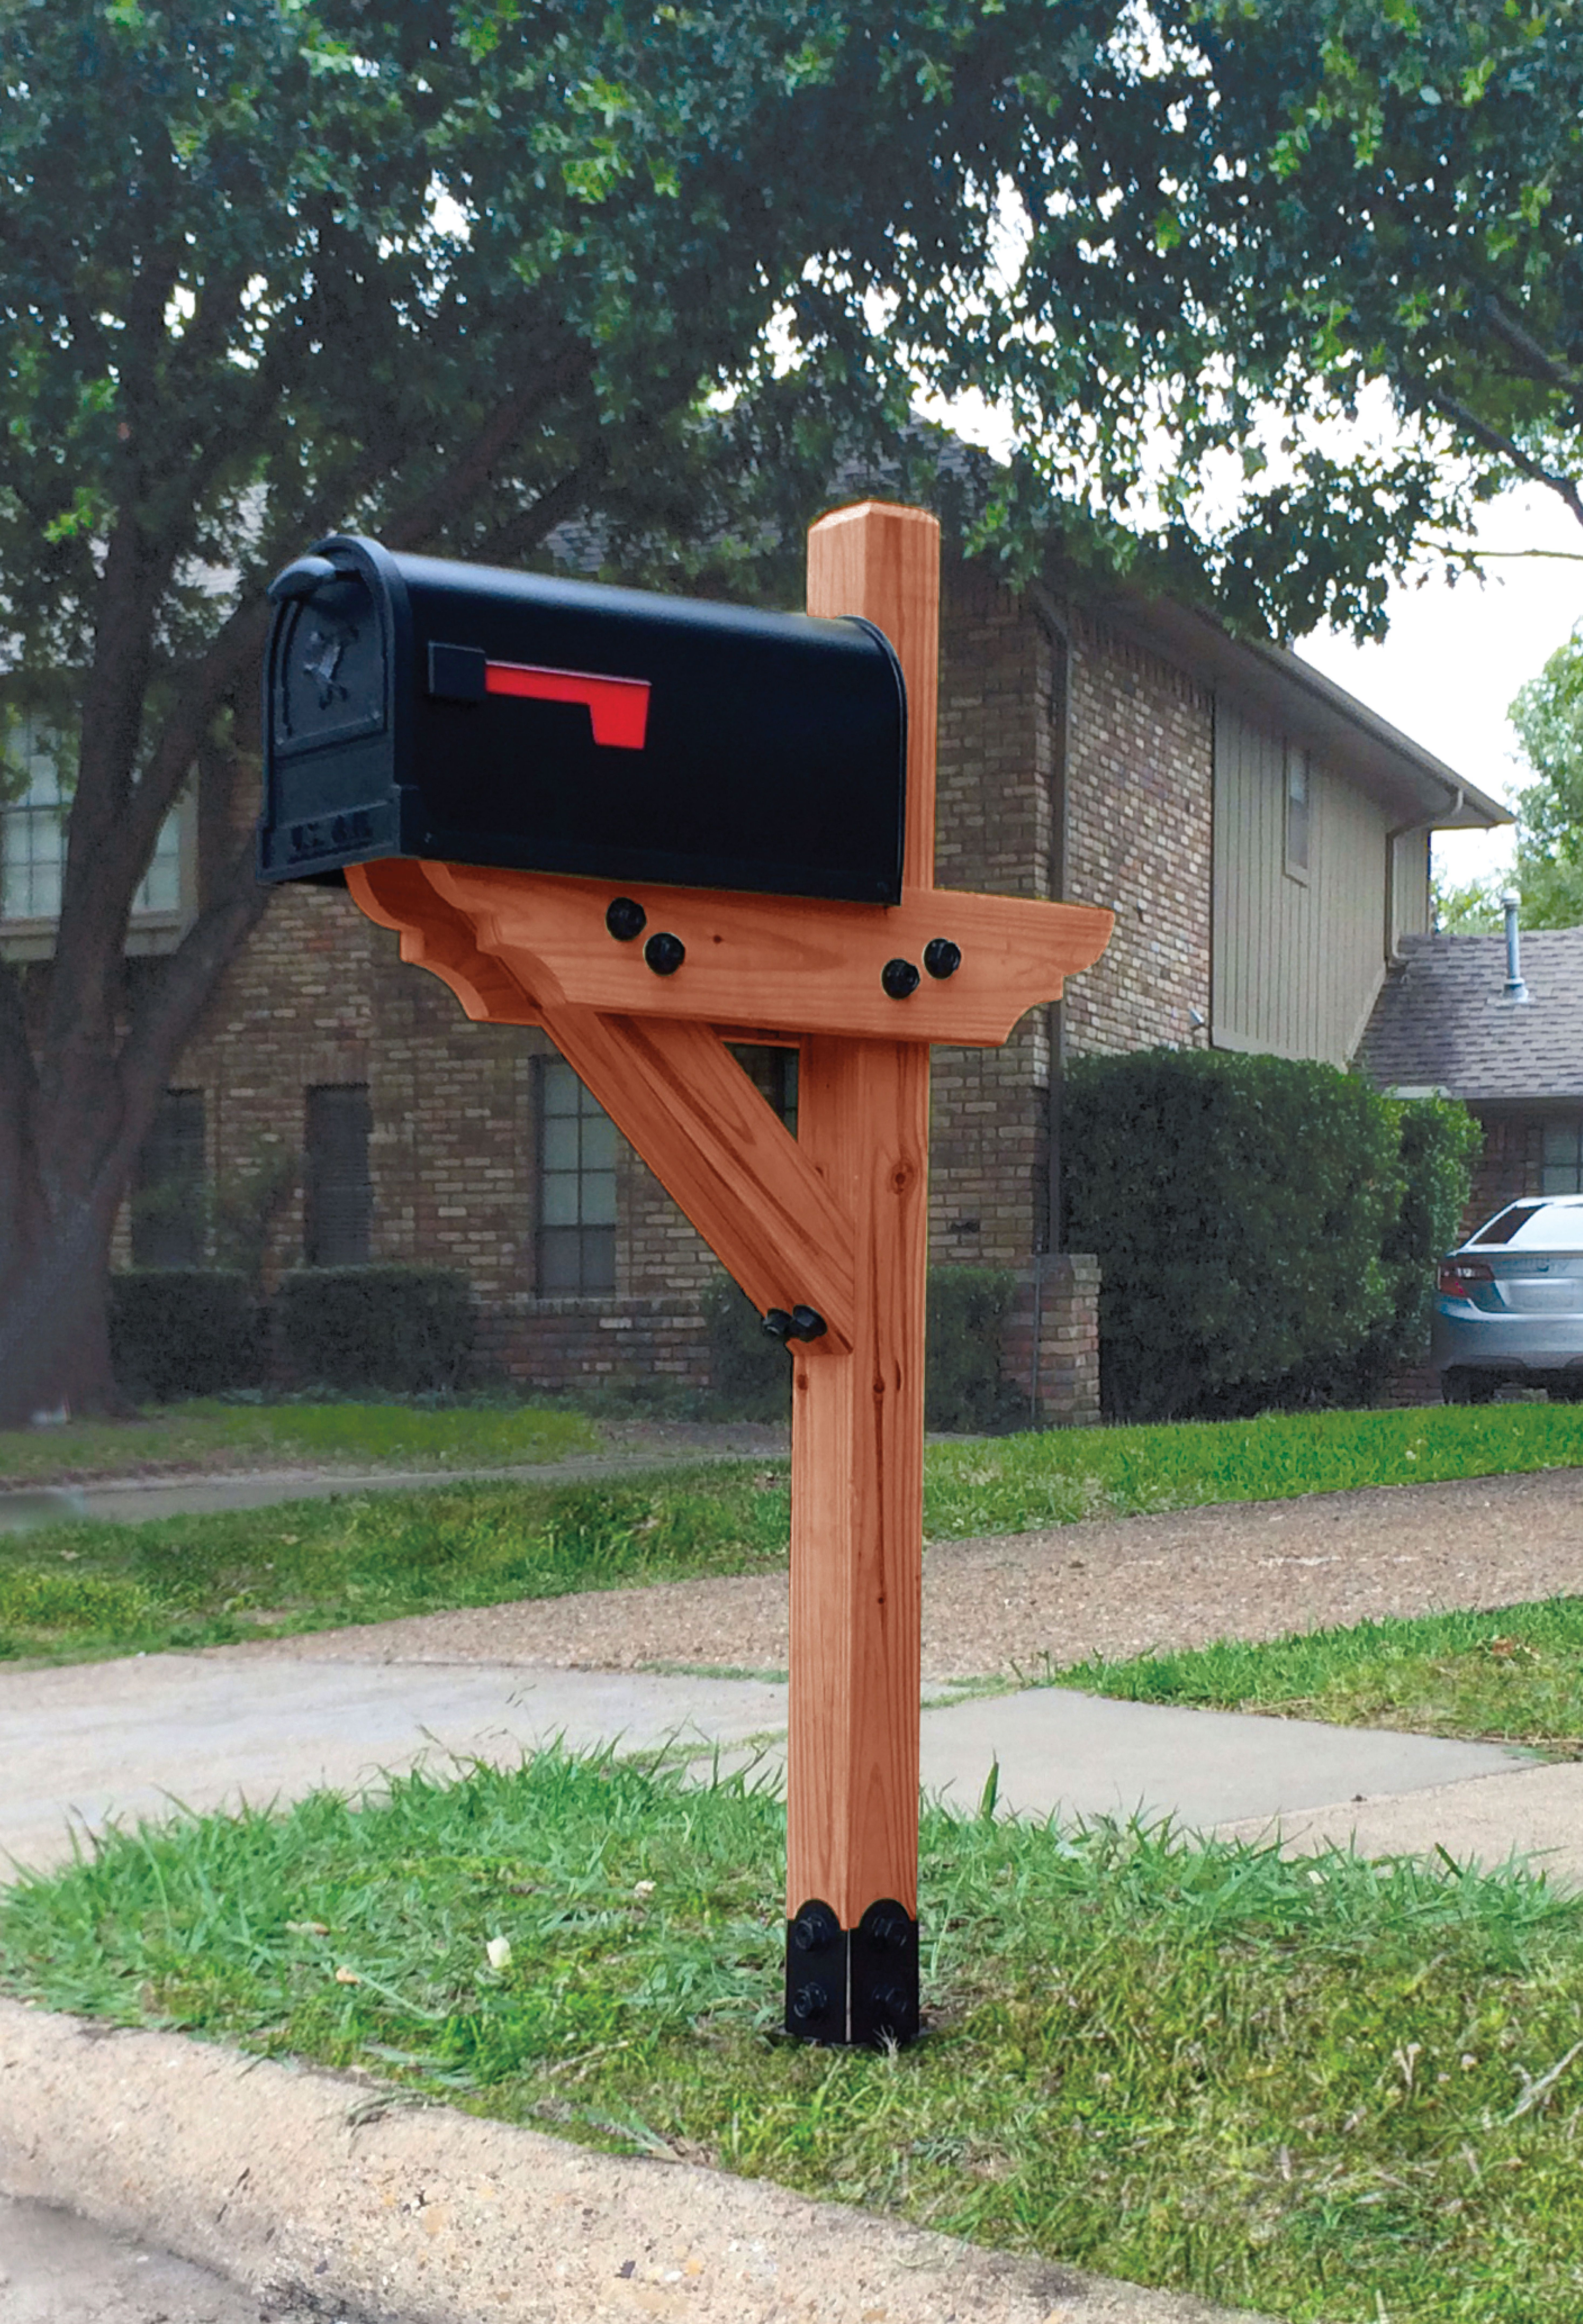 Best ideas about DIY Wooden Mailbox . Save or Pin Dress your mailbox up in style with this wood mailbox post Now.